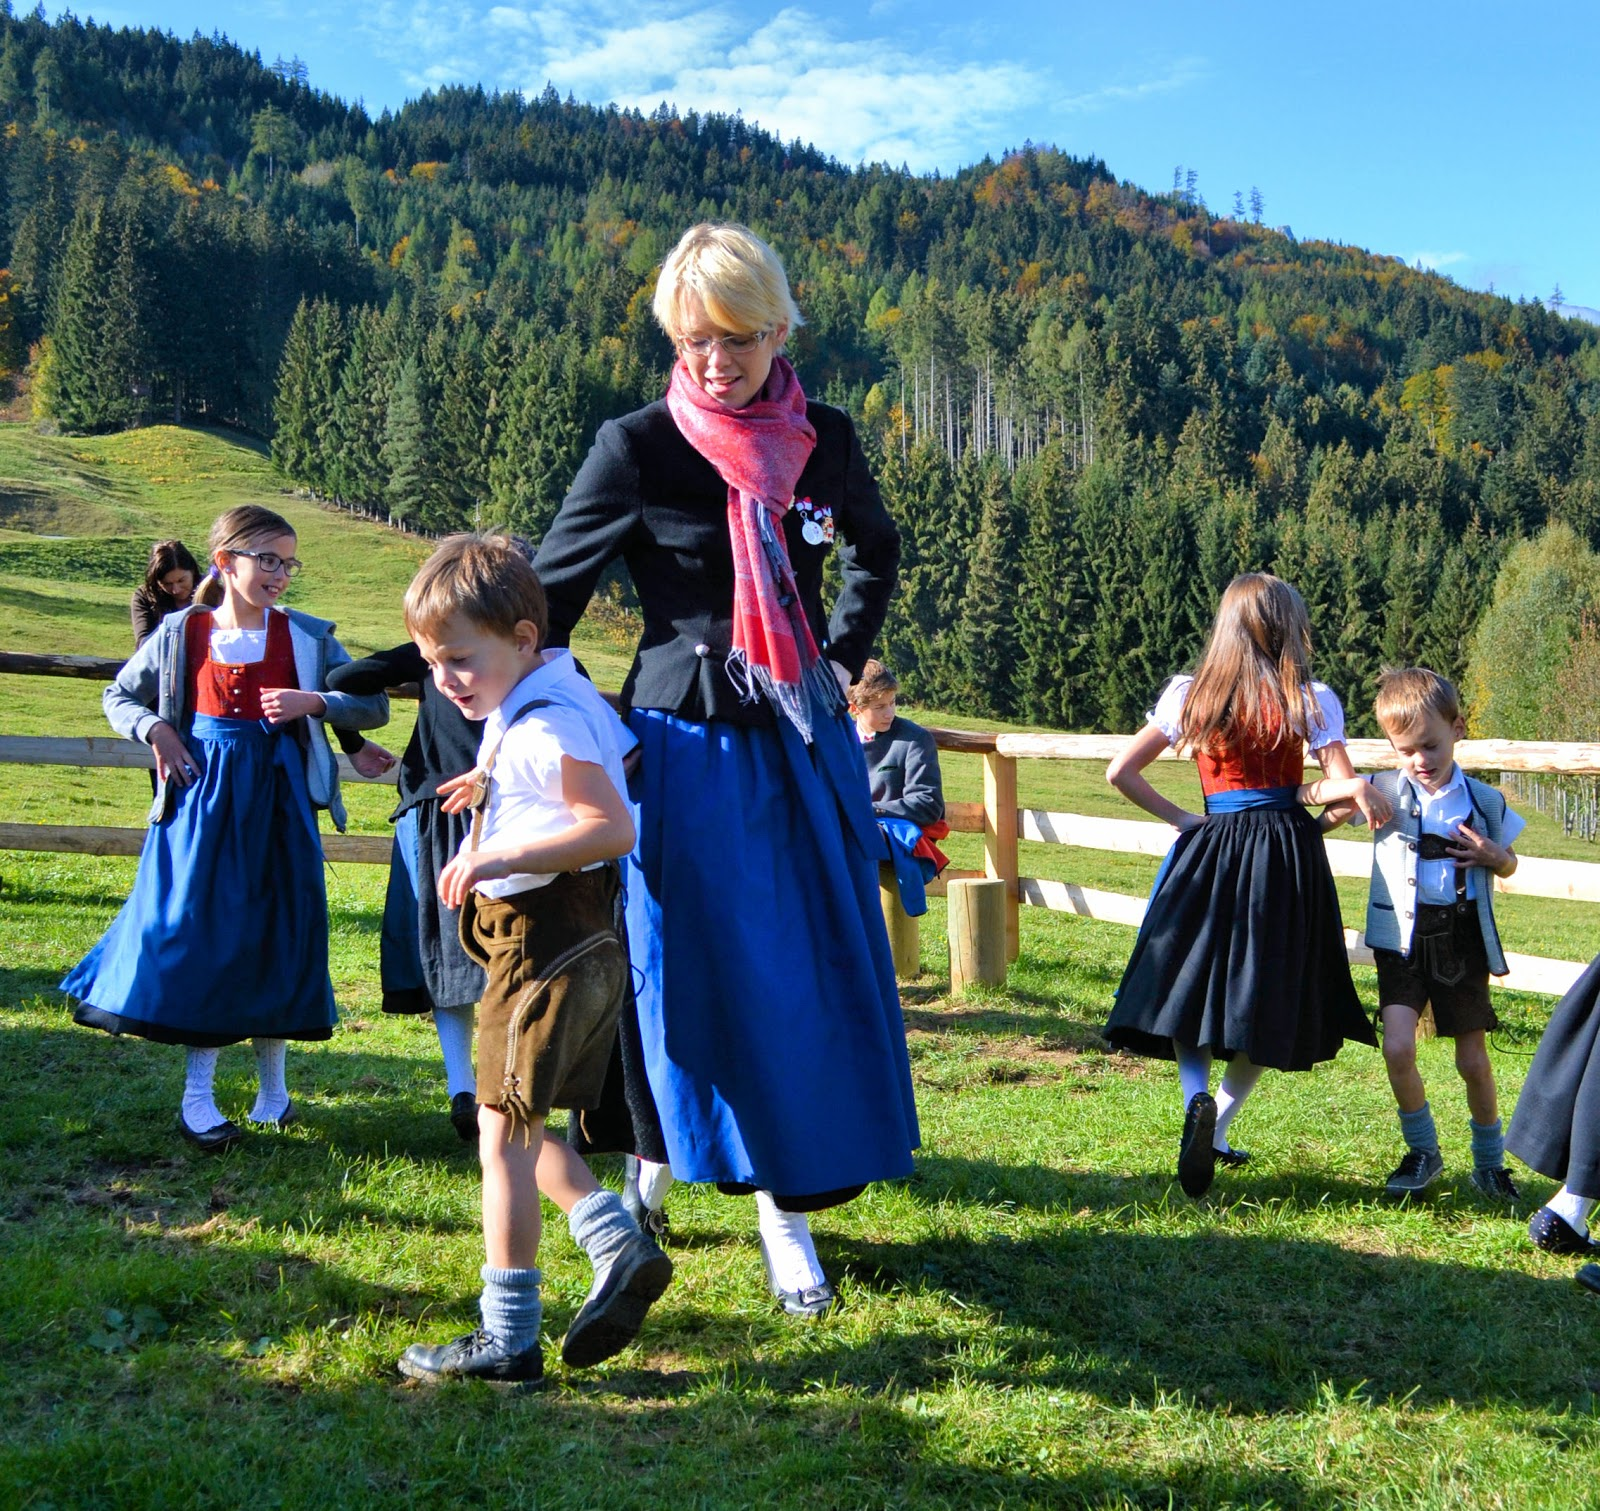 Sound of Music comes to life in the Gschwandtanger meadow.